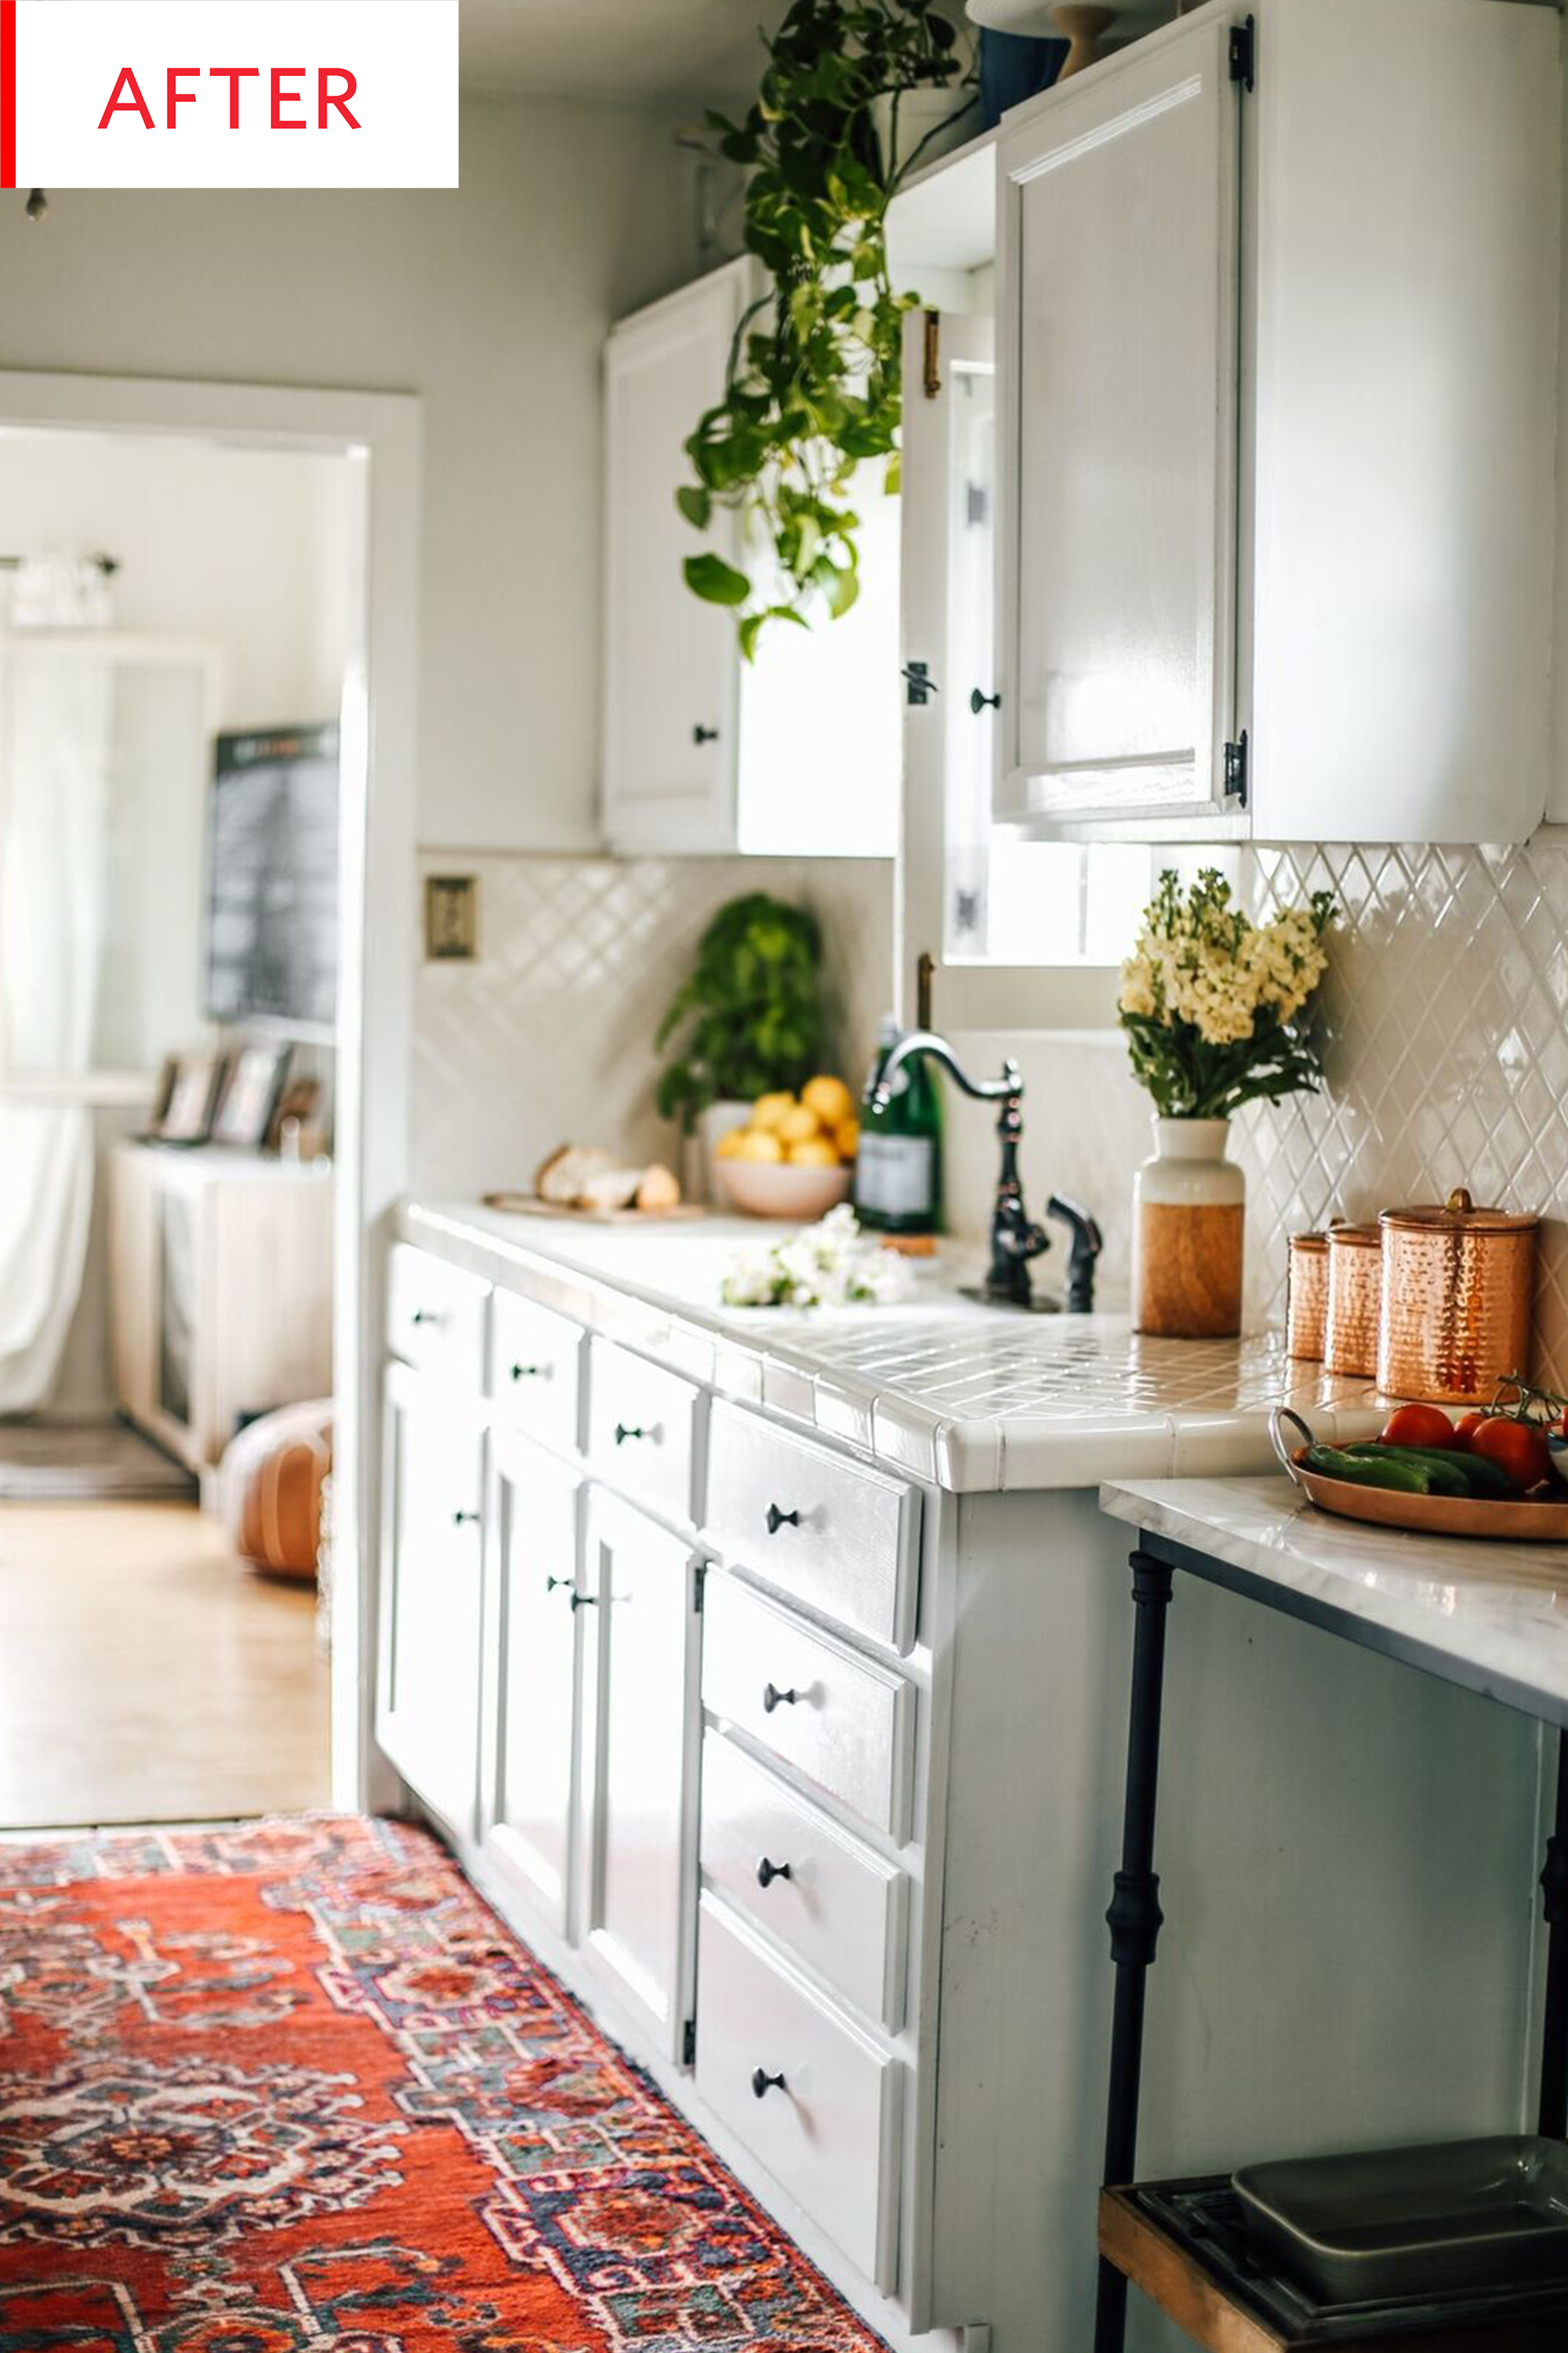 Kitchen Decor Ideas Rental Makeover Before After Apartment Therapy